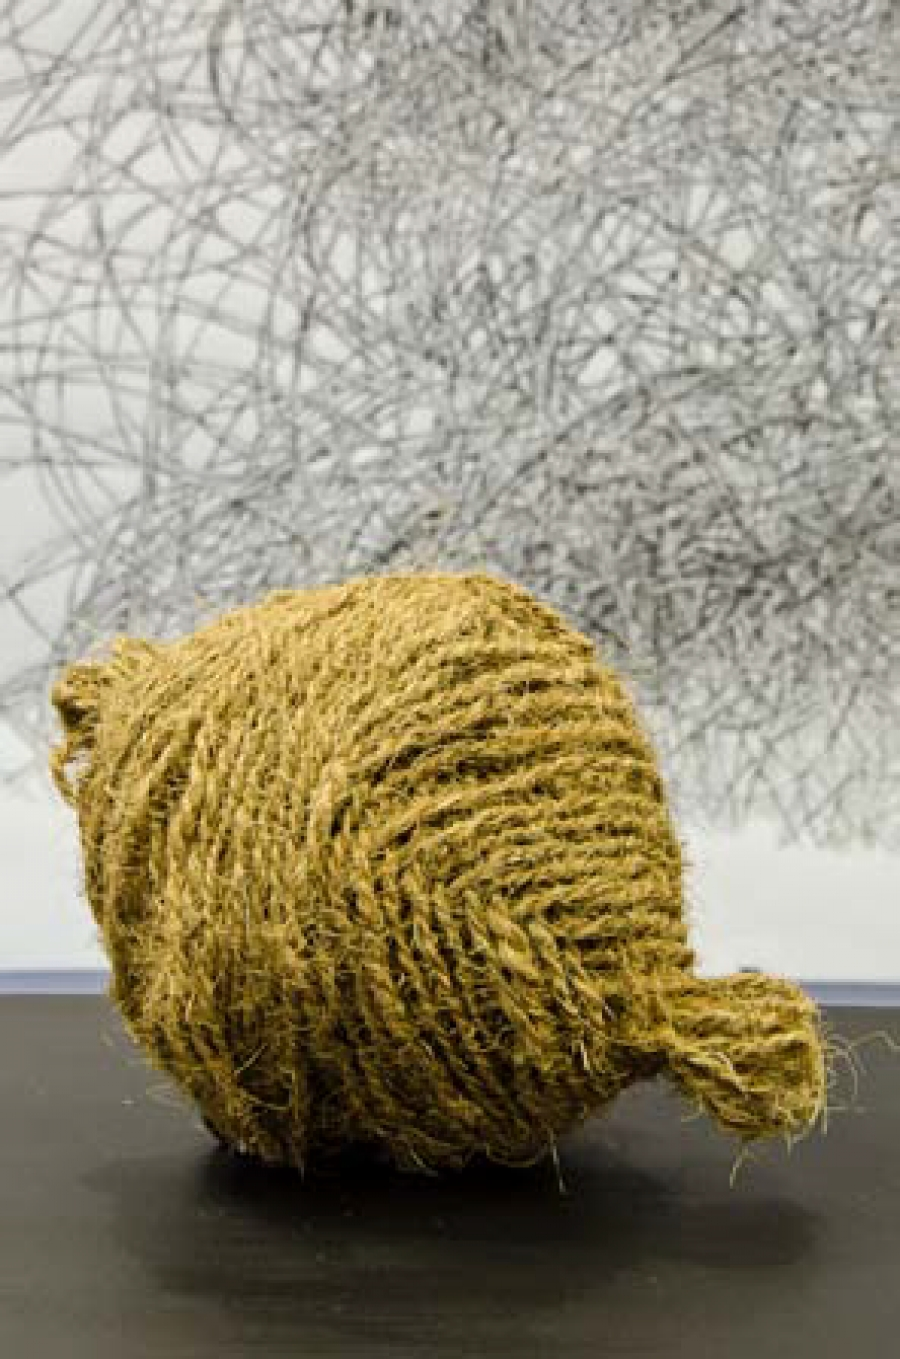 Coir Rope on the Art of Assemblage at Jo'burg Fringe 2011